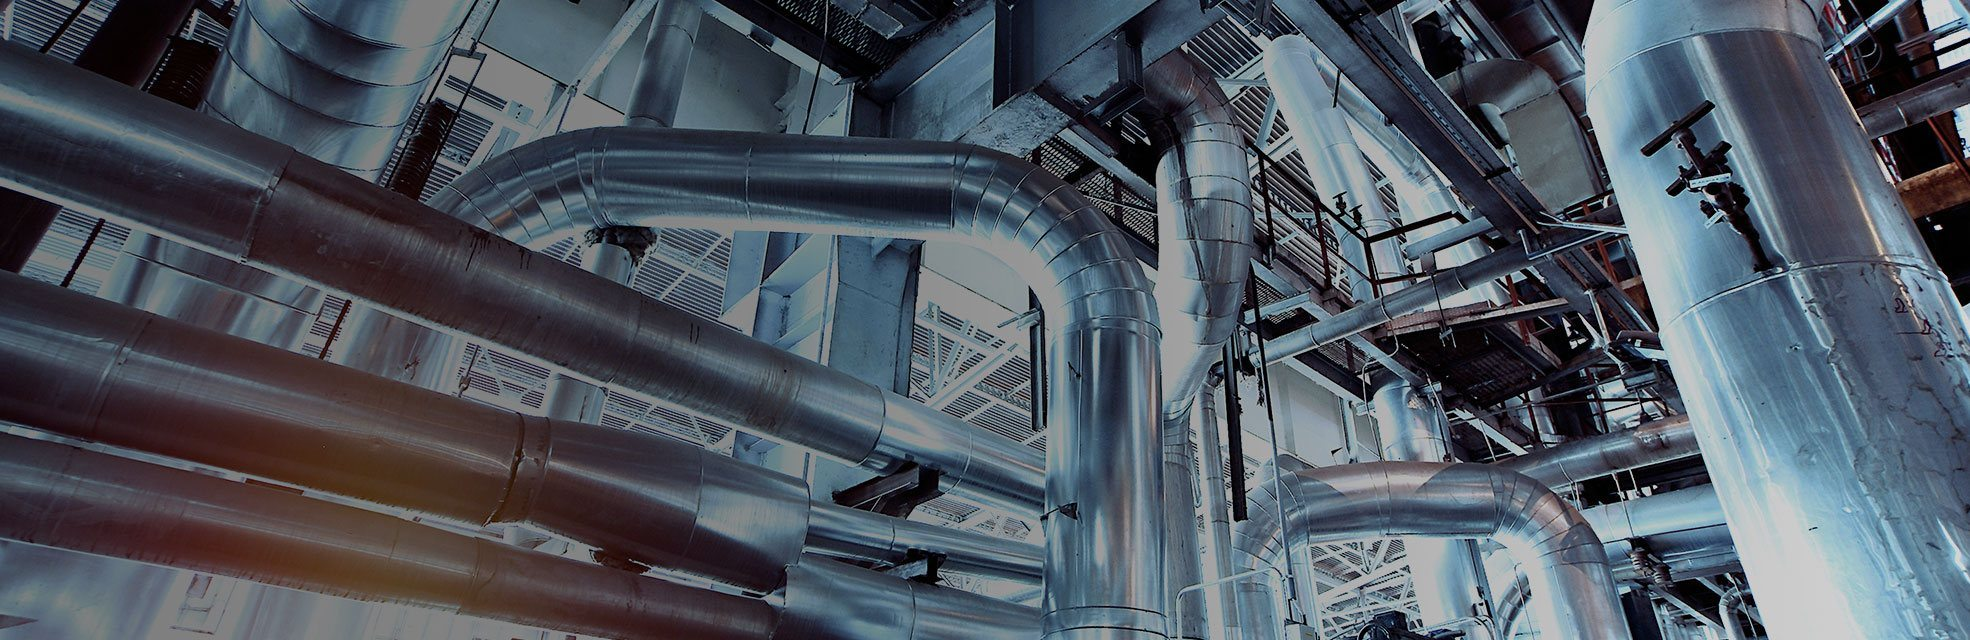 Mechanical & Electrical Systems        Leading Supplier of Electro-Mechanical solutions: Air Conditioning, Electricity and Piping Systems.           Explore